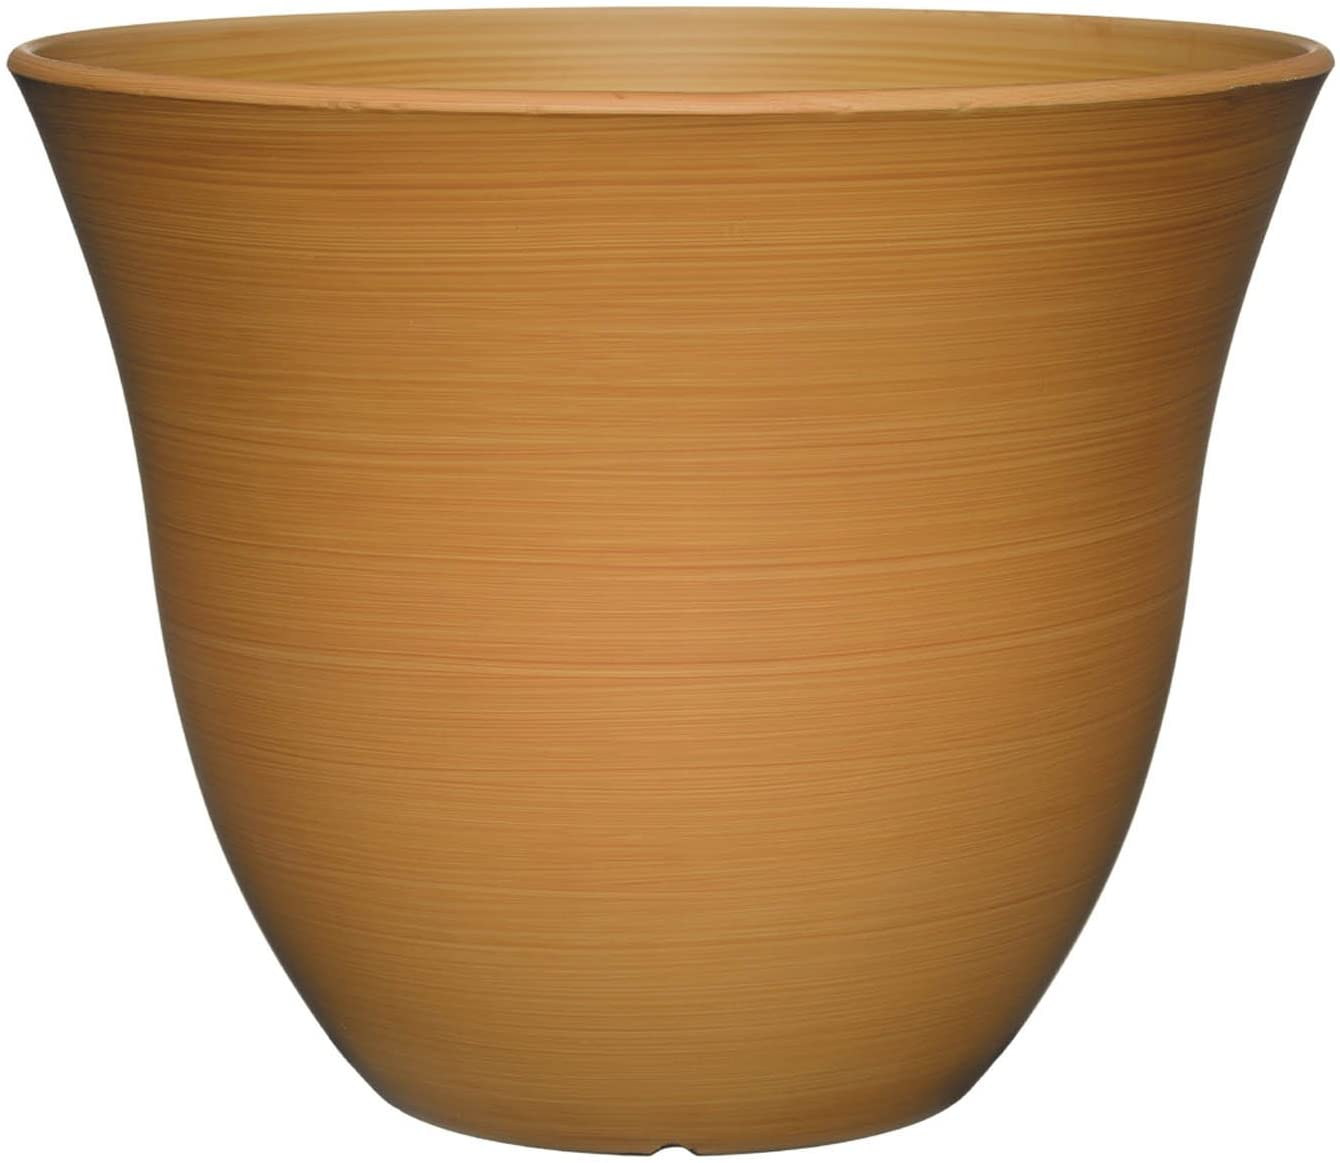 "Classic Home and Garden Honeysuckle Planter, Patio Pot, 15"" Bamboo"